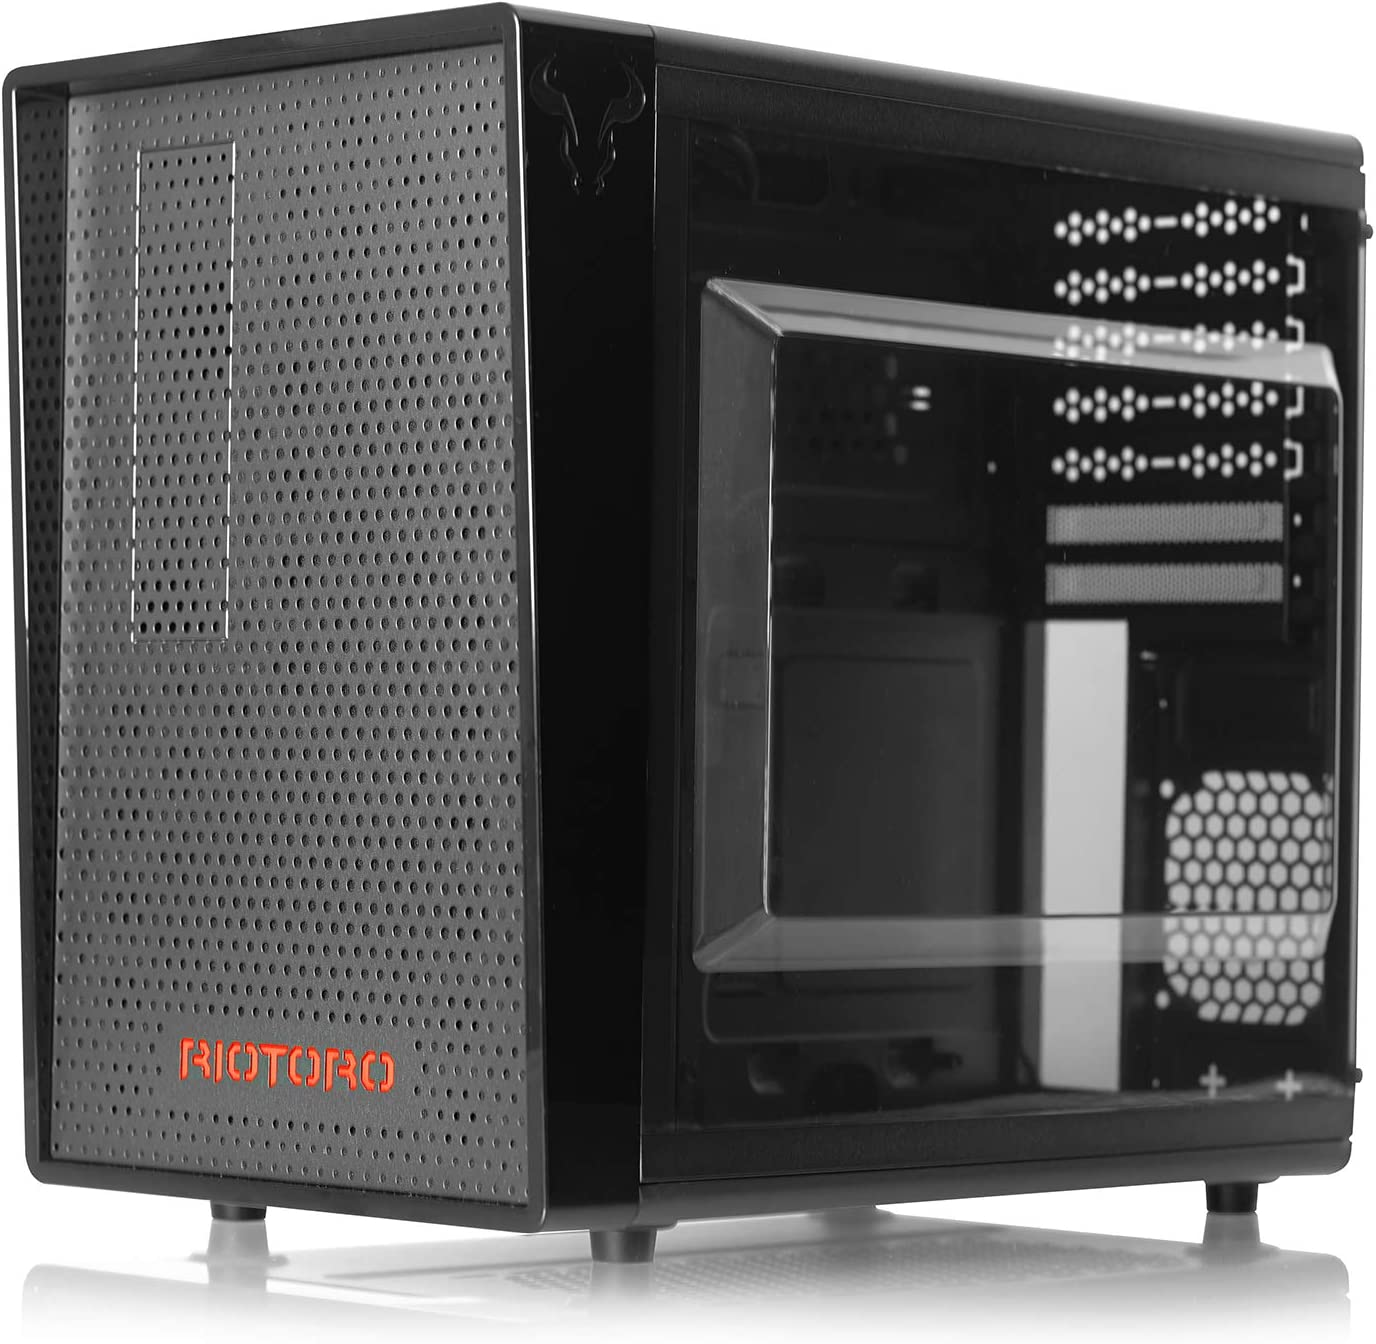 Riotoro Full ATX Case (CR1080)